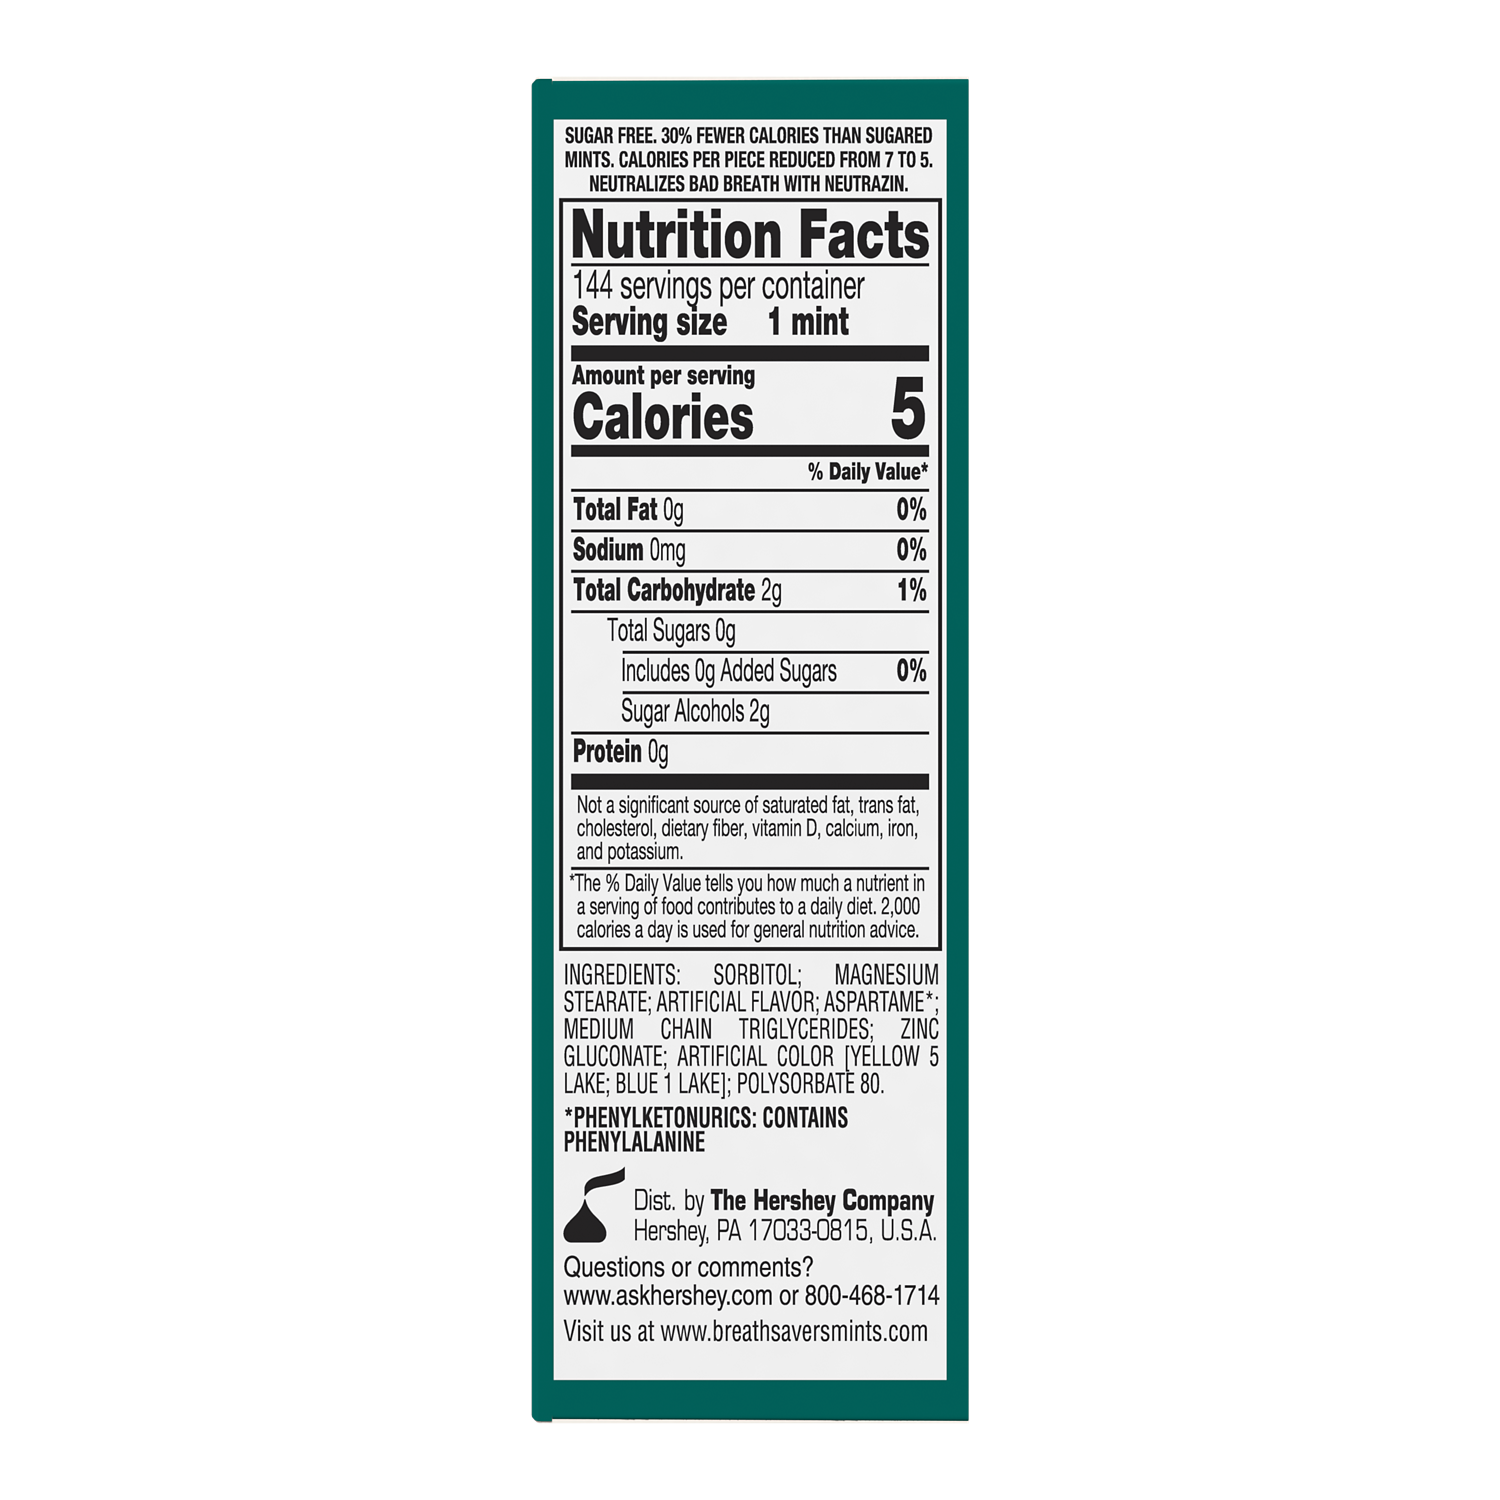 BREATH SAVERS Wintergreen Sugar Free Mints, 9 oz box, 12 pack - Back of Package